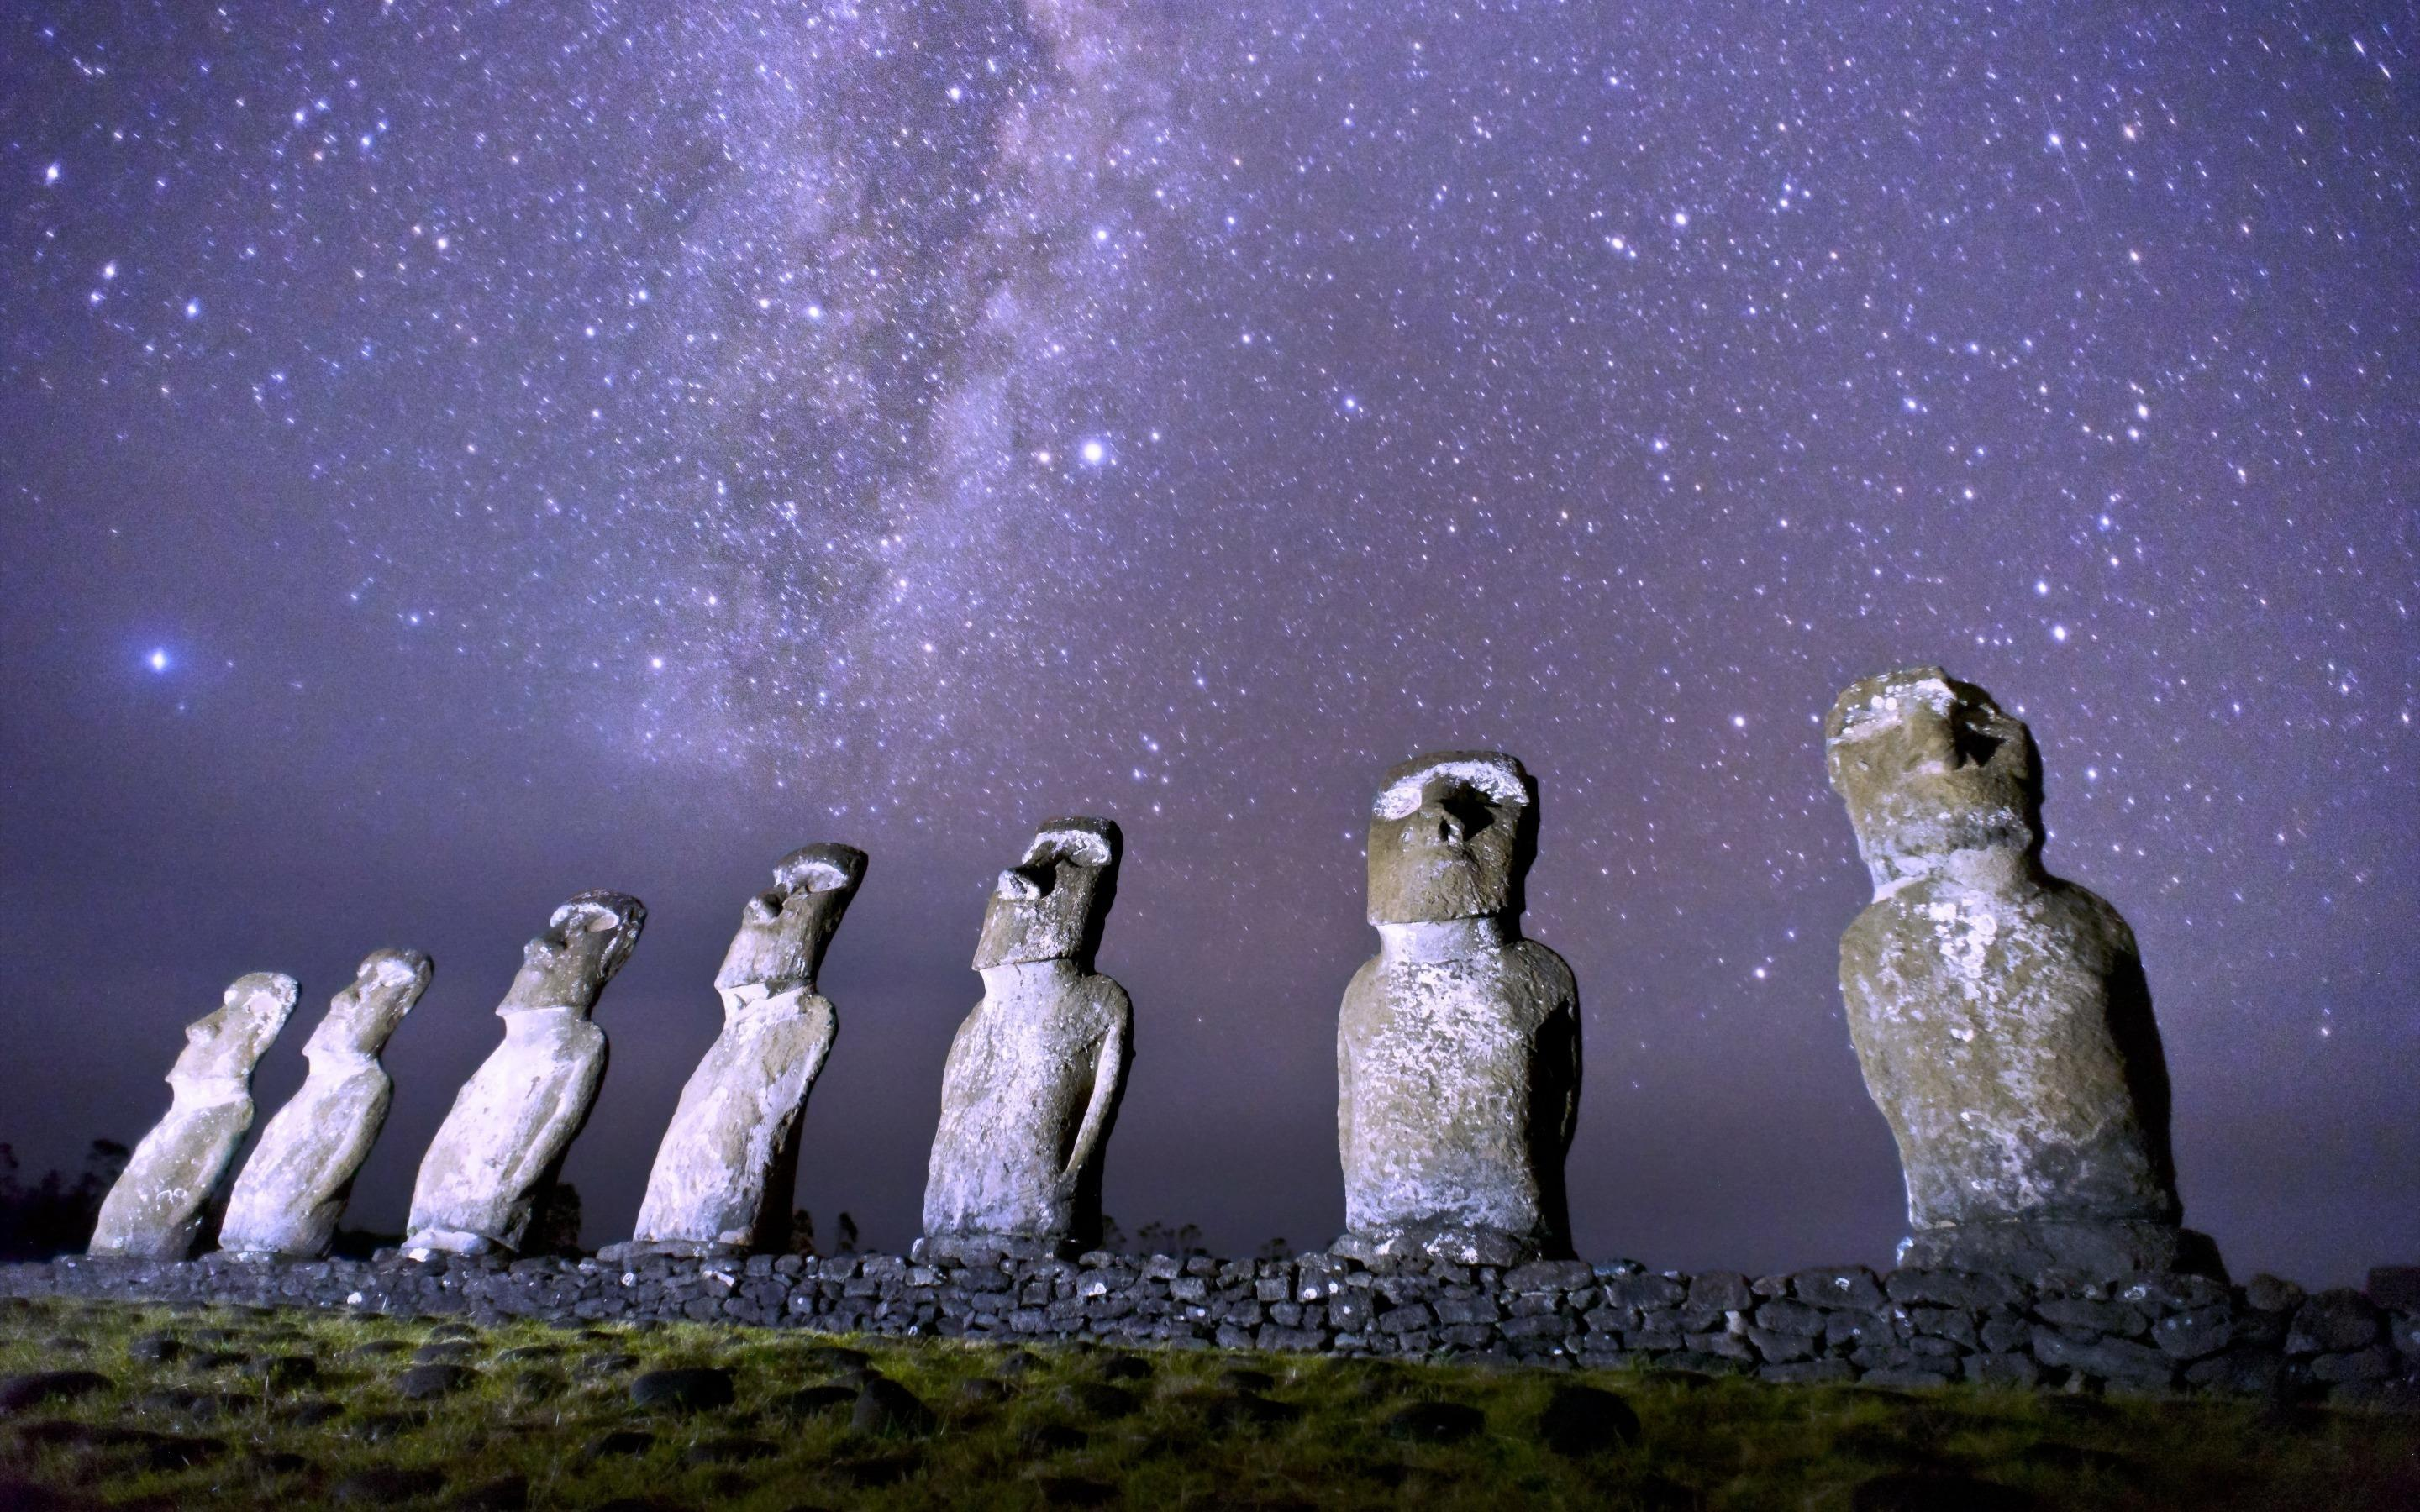 Wallpapers Magellanic clouds, Easter Island, Rapa Nui, Moai statues